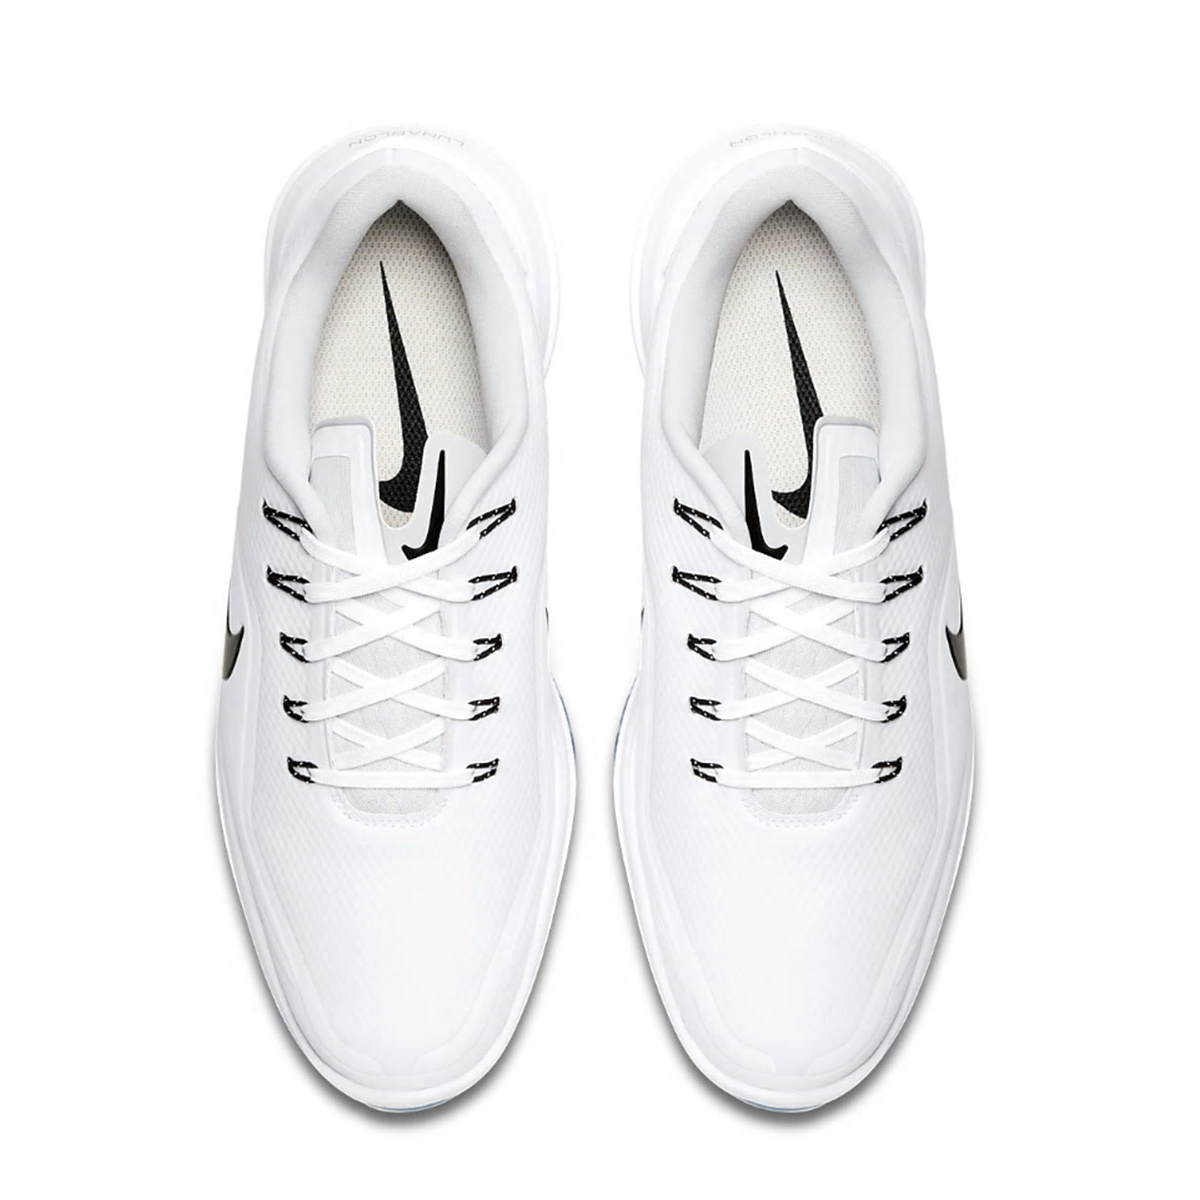 17318e665794f1 Nike Golf Lunar Control Vapor 2 Shoes from american golf